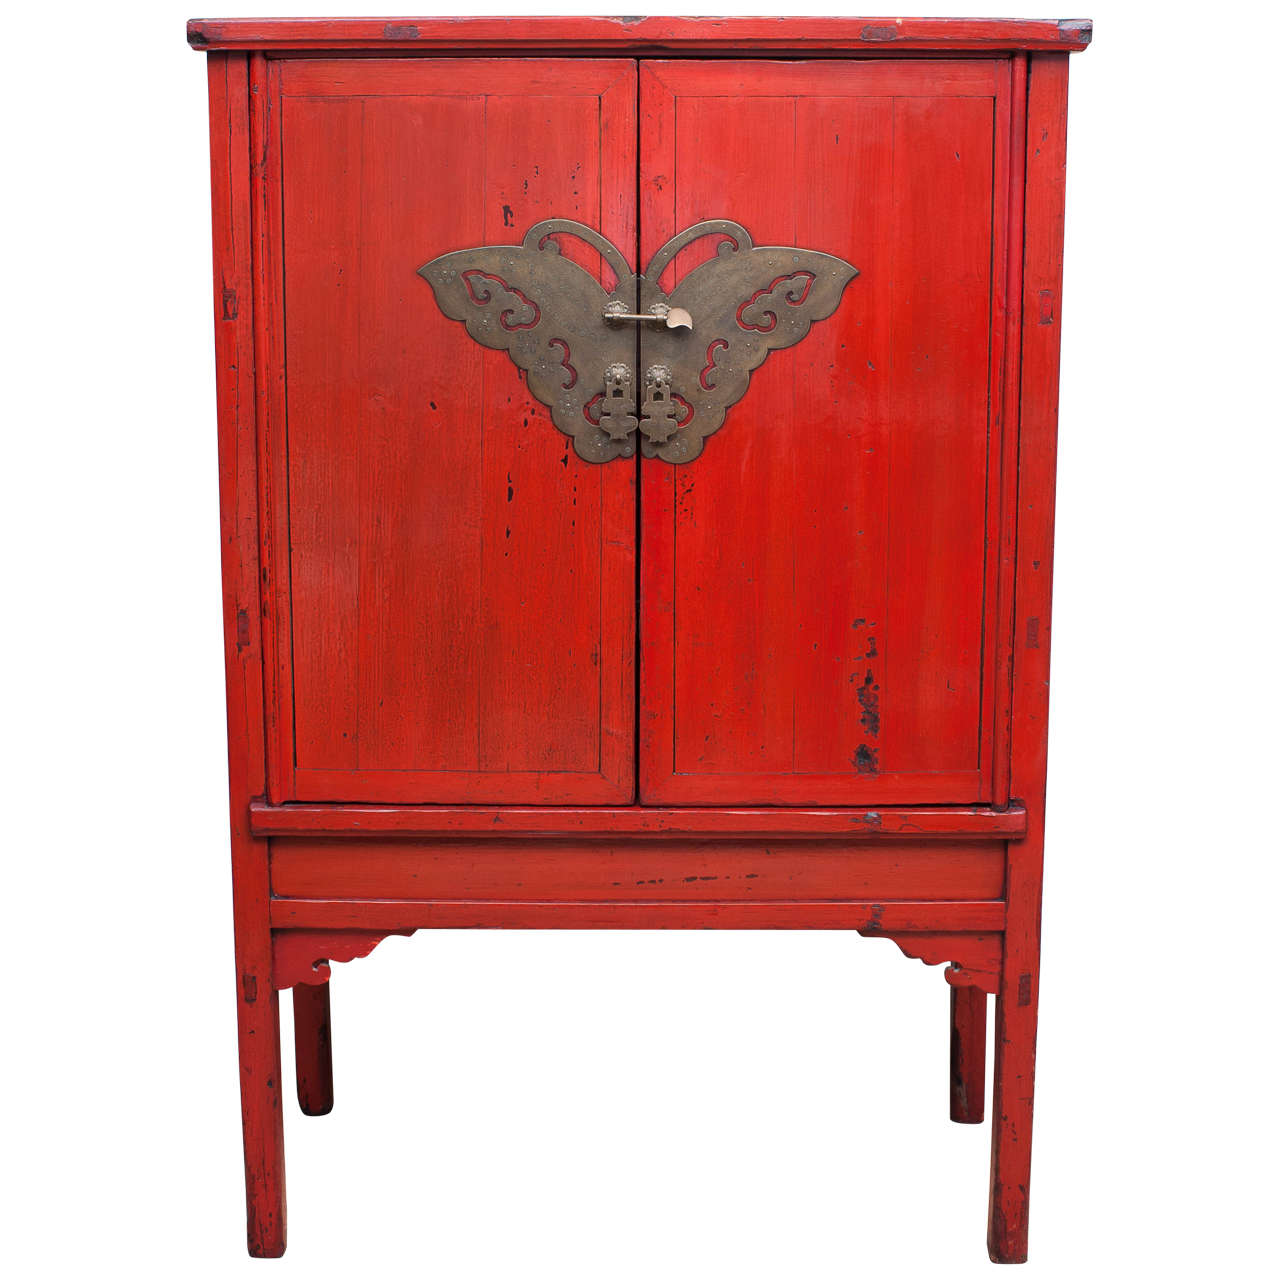 Red lacquer butterfly cabinet 19th century for sale at for Red chinese furniture